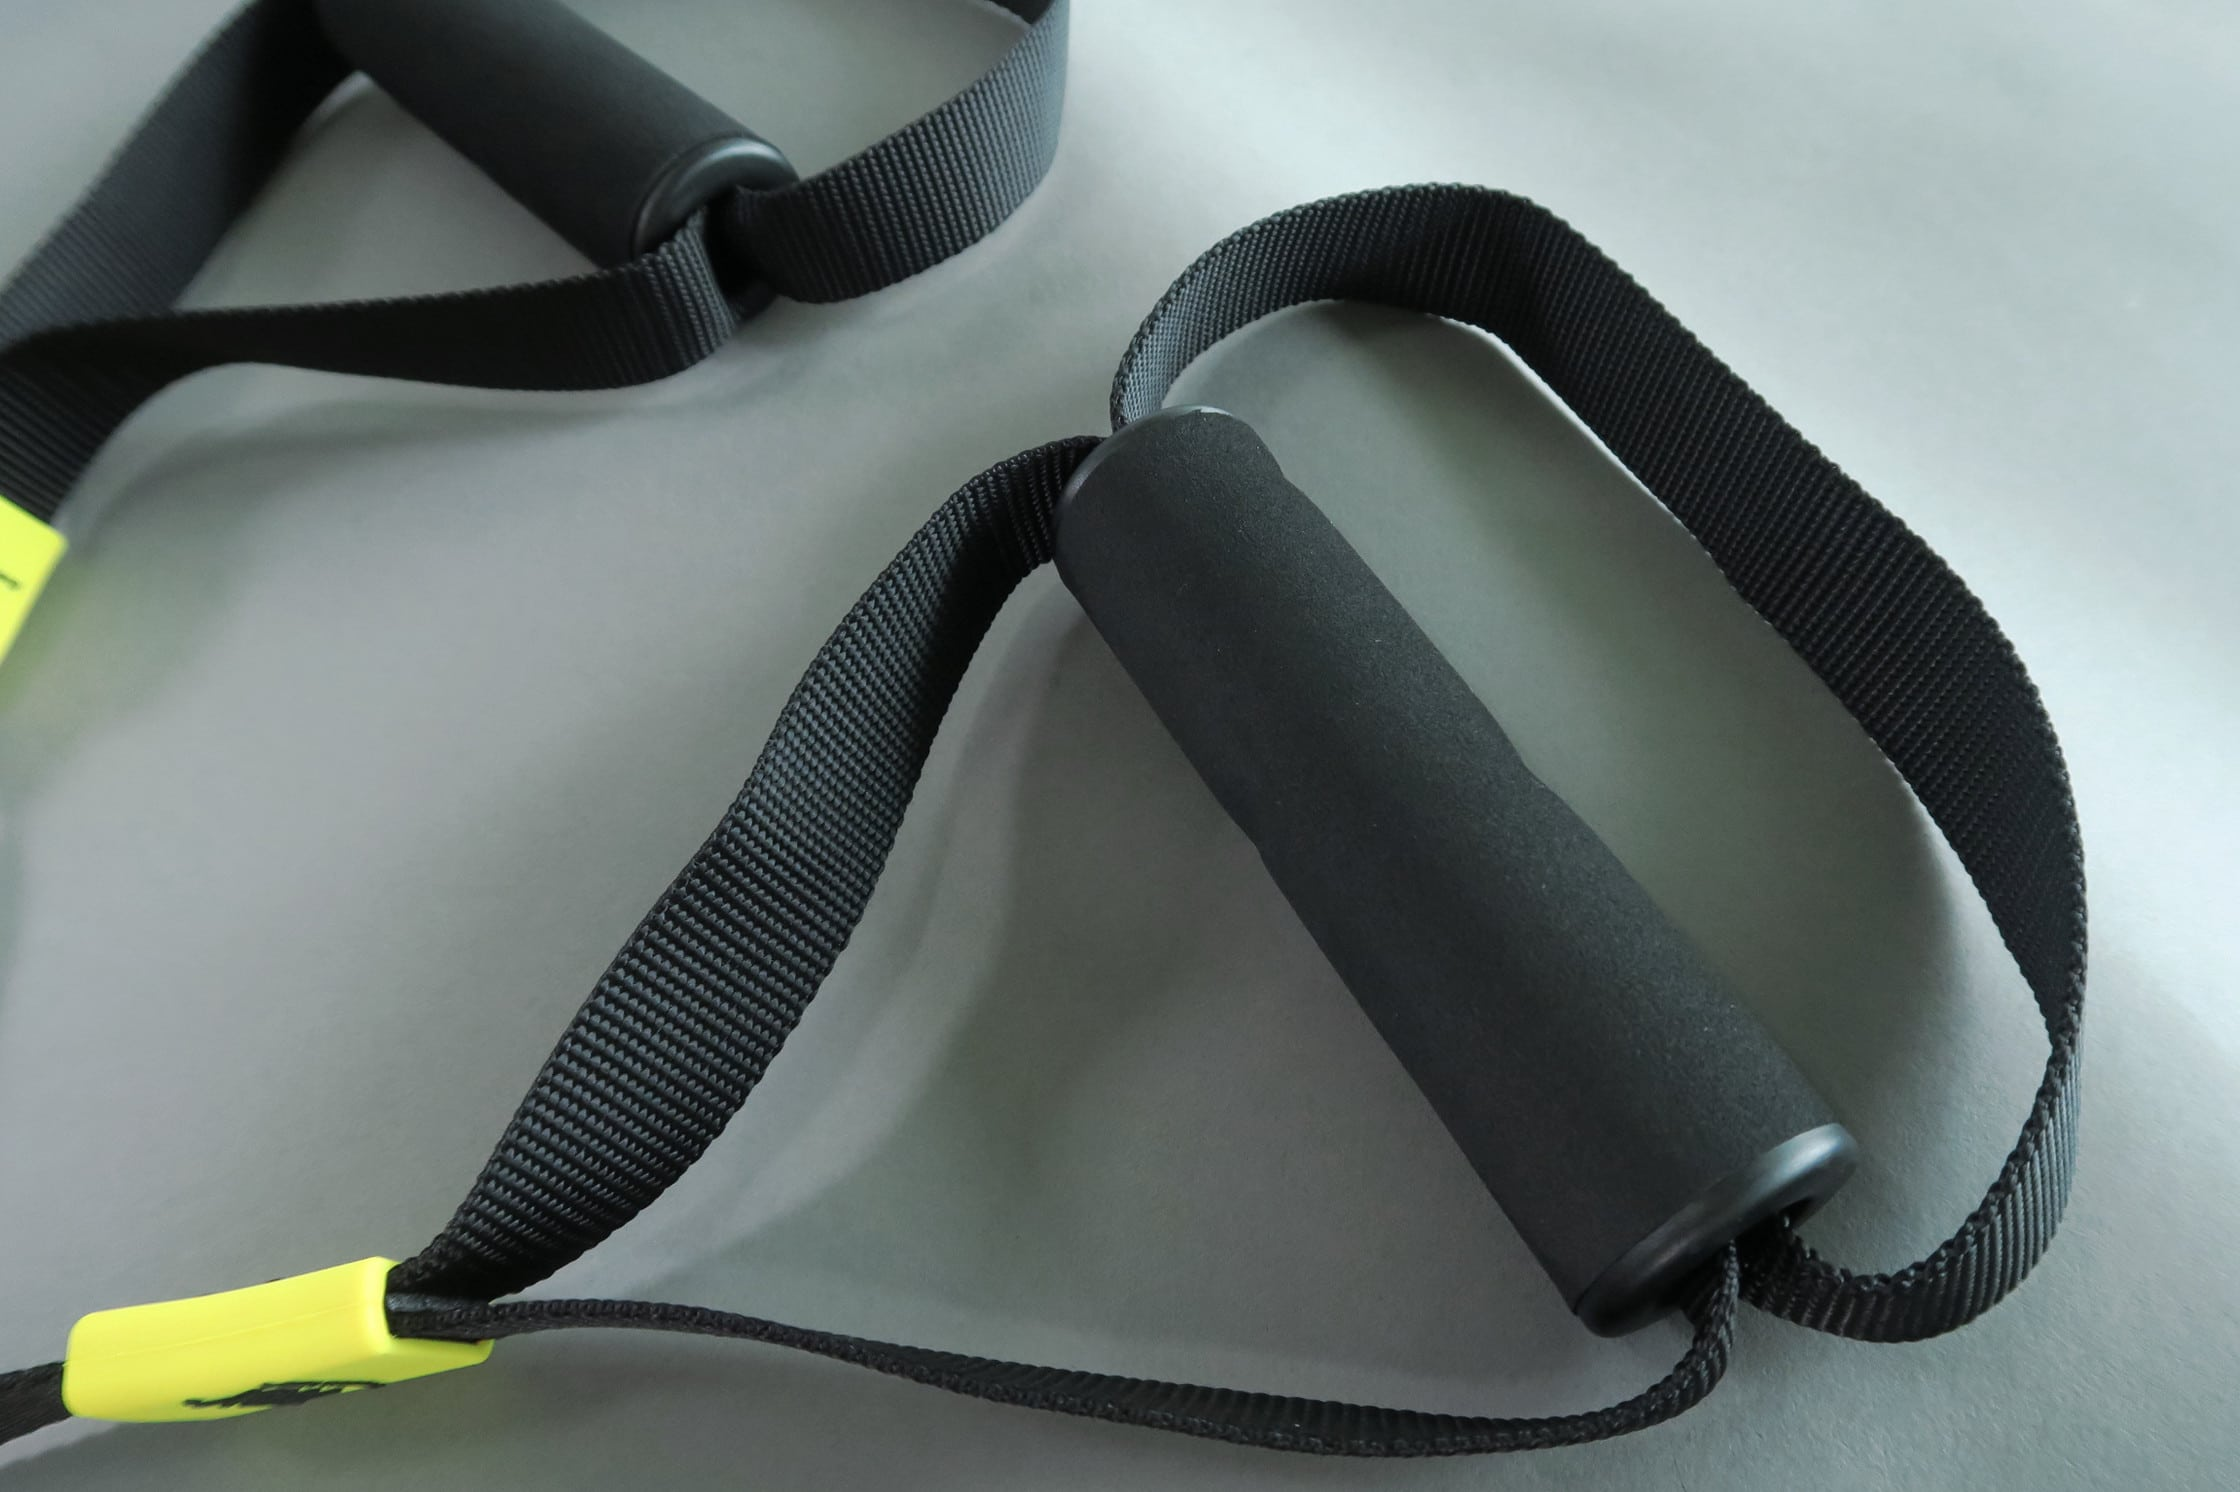 TRX Go Suspension Training Kit Foam Handles